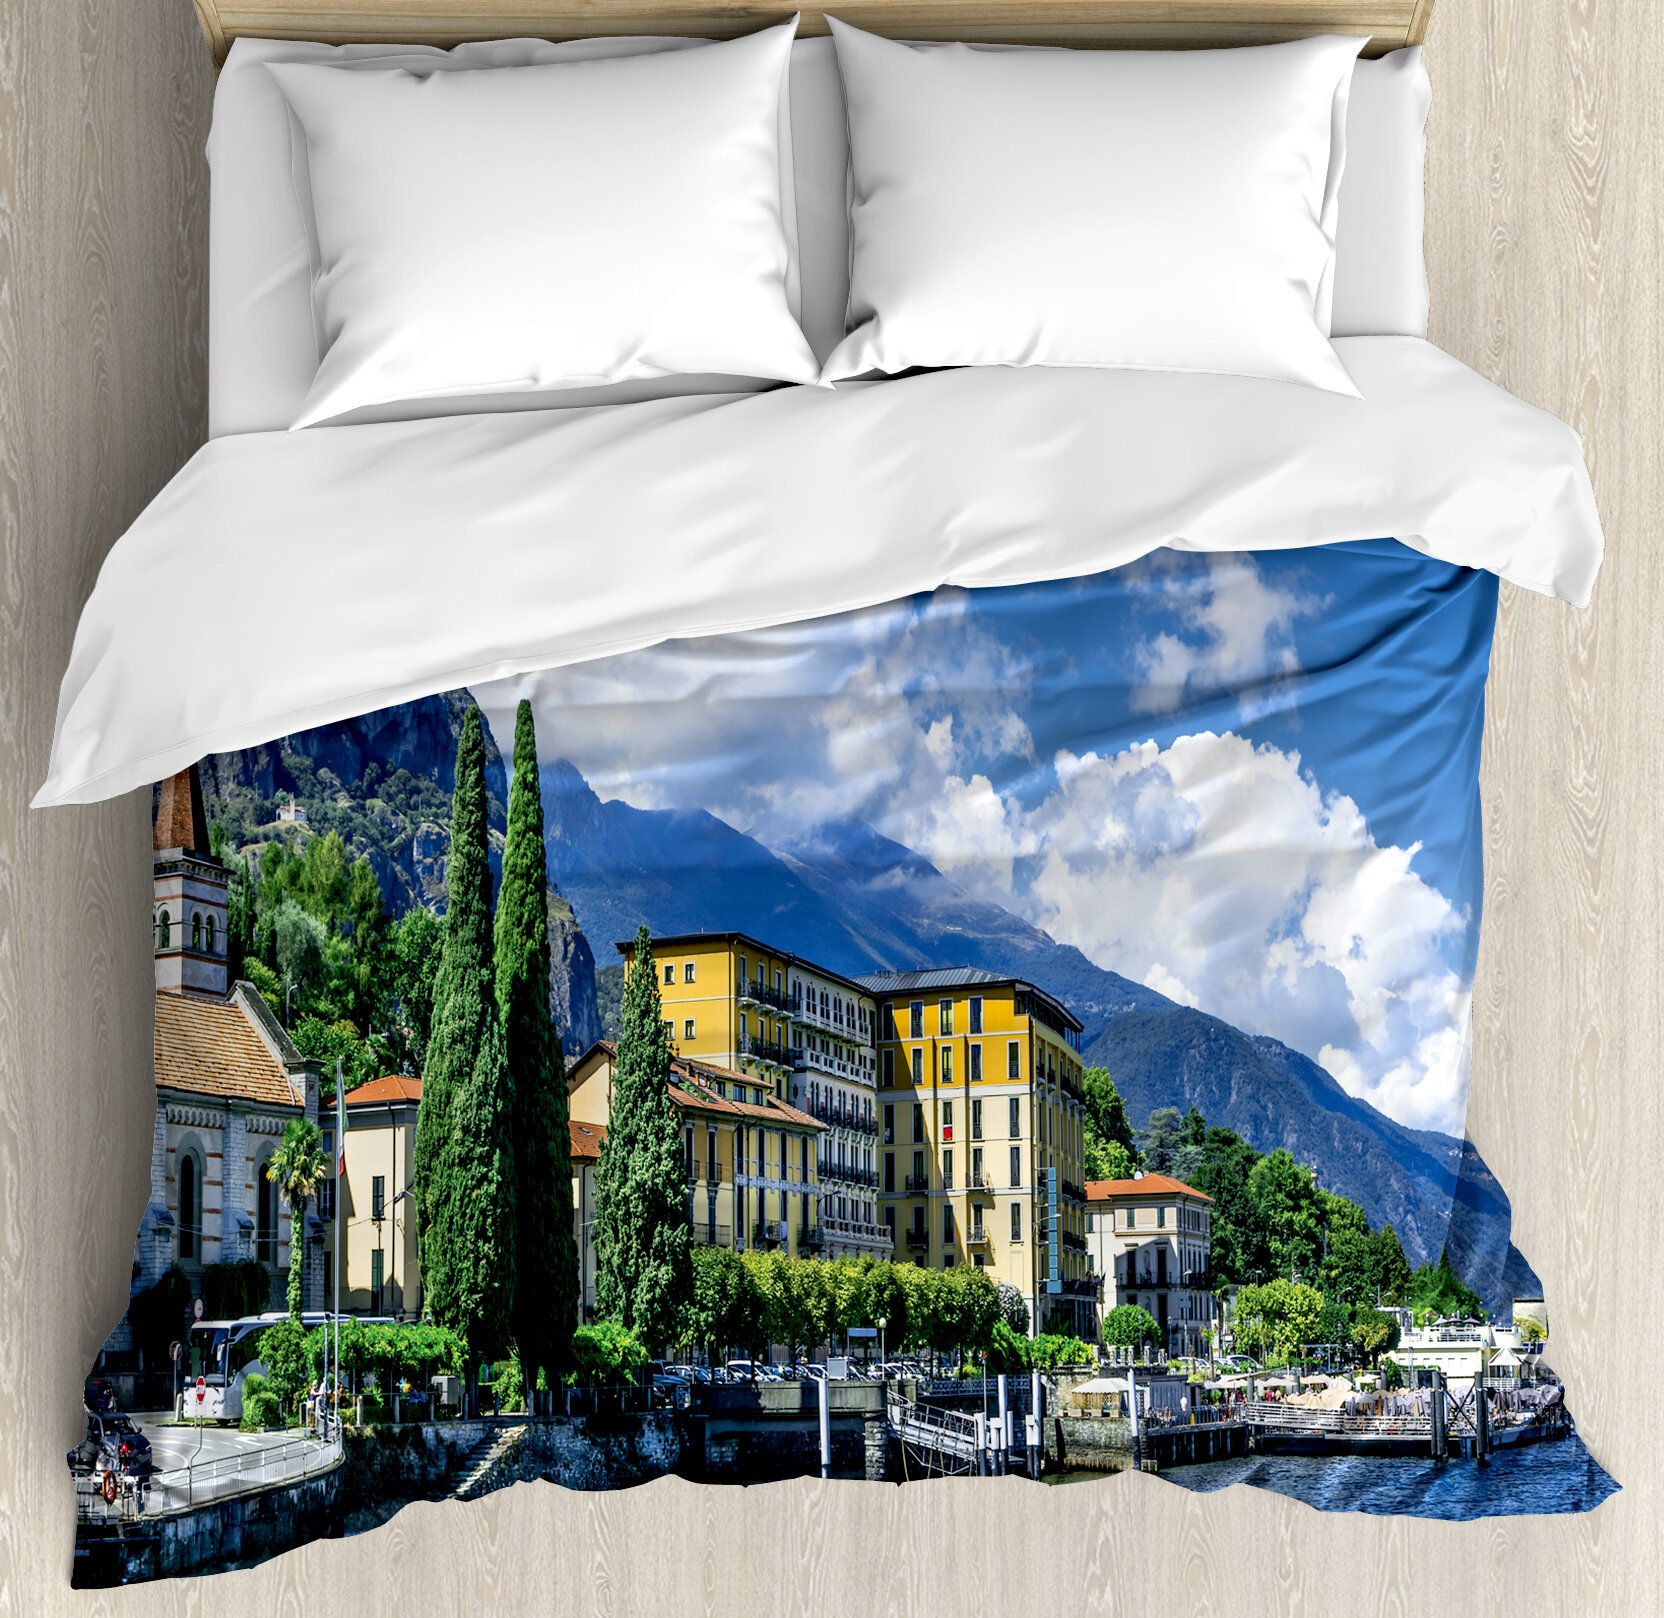 East Urban Home Italy The Panoramic Landscape Of Lake Como Mountains And Clouds Digital Image Duvet Cover Set Wayfair